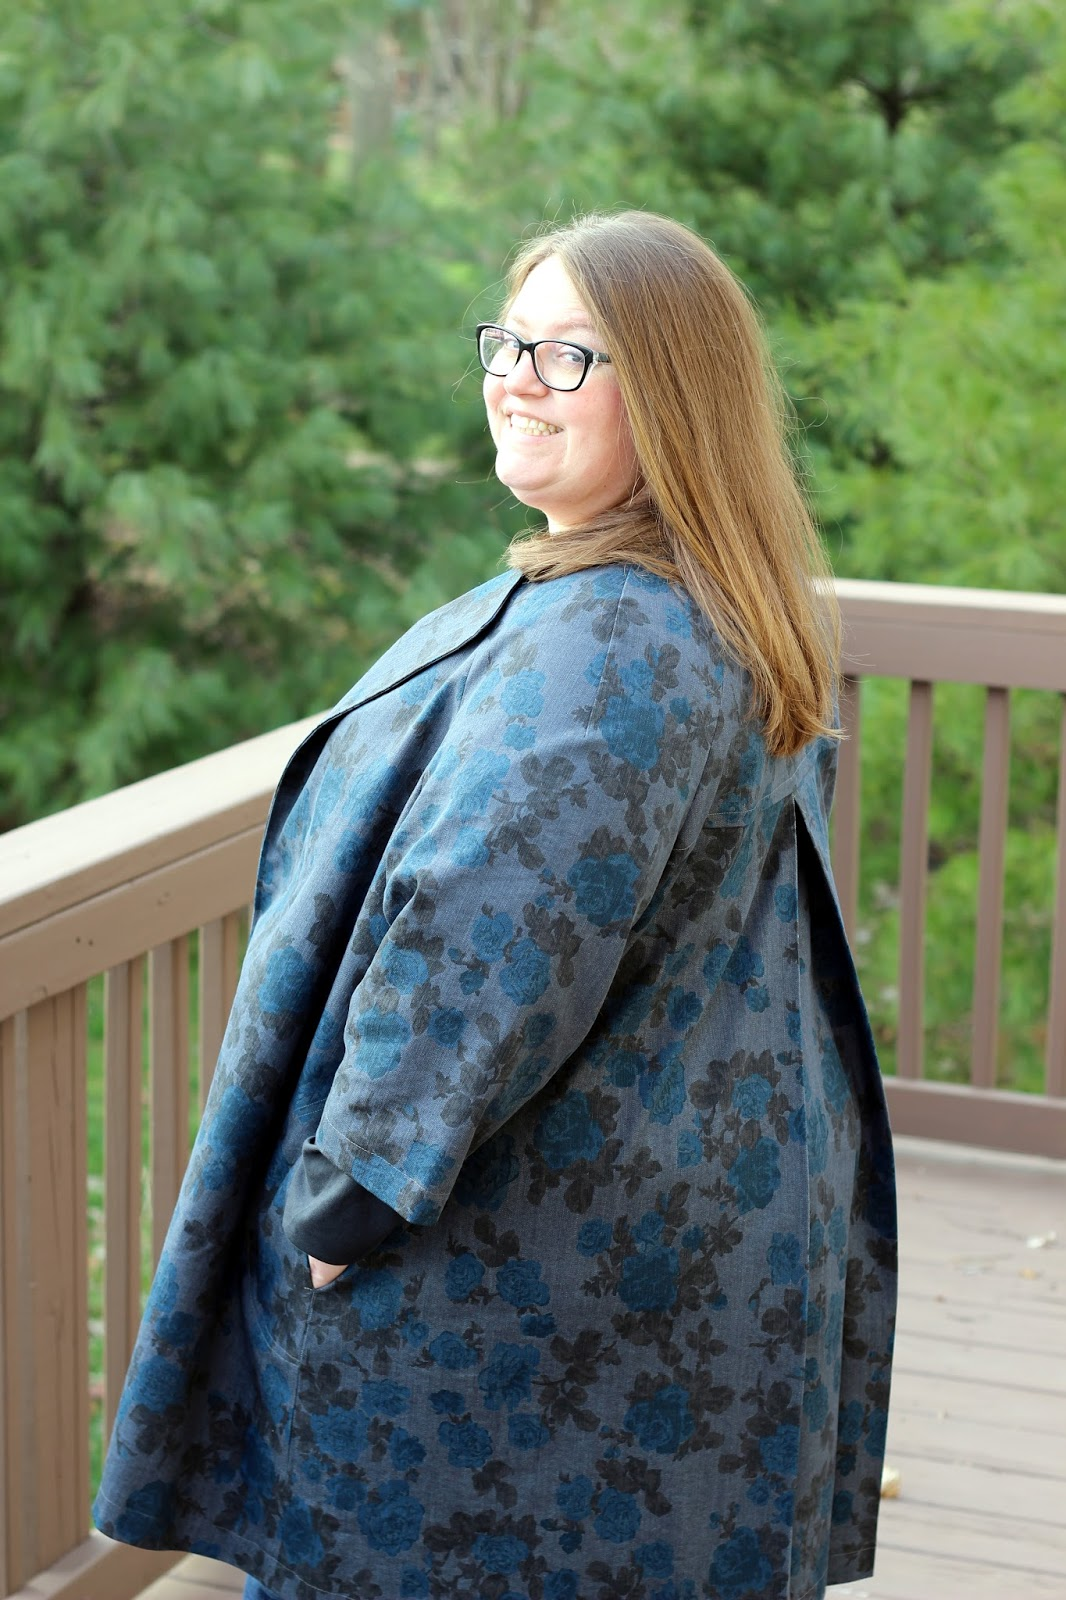 Pandora Sews Plus Size Clothes: Final Sew of 2015 - Indygo Junction ...